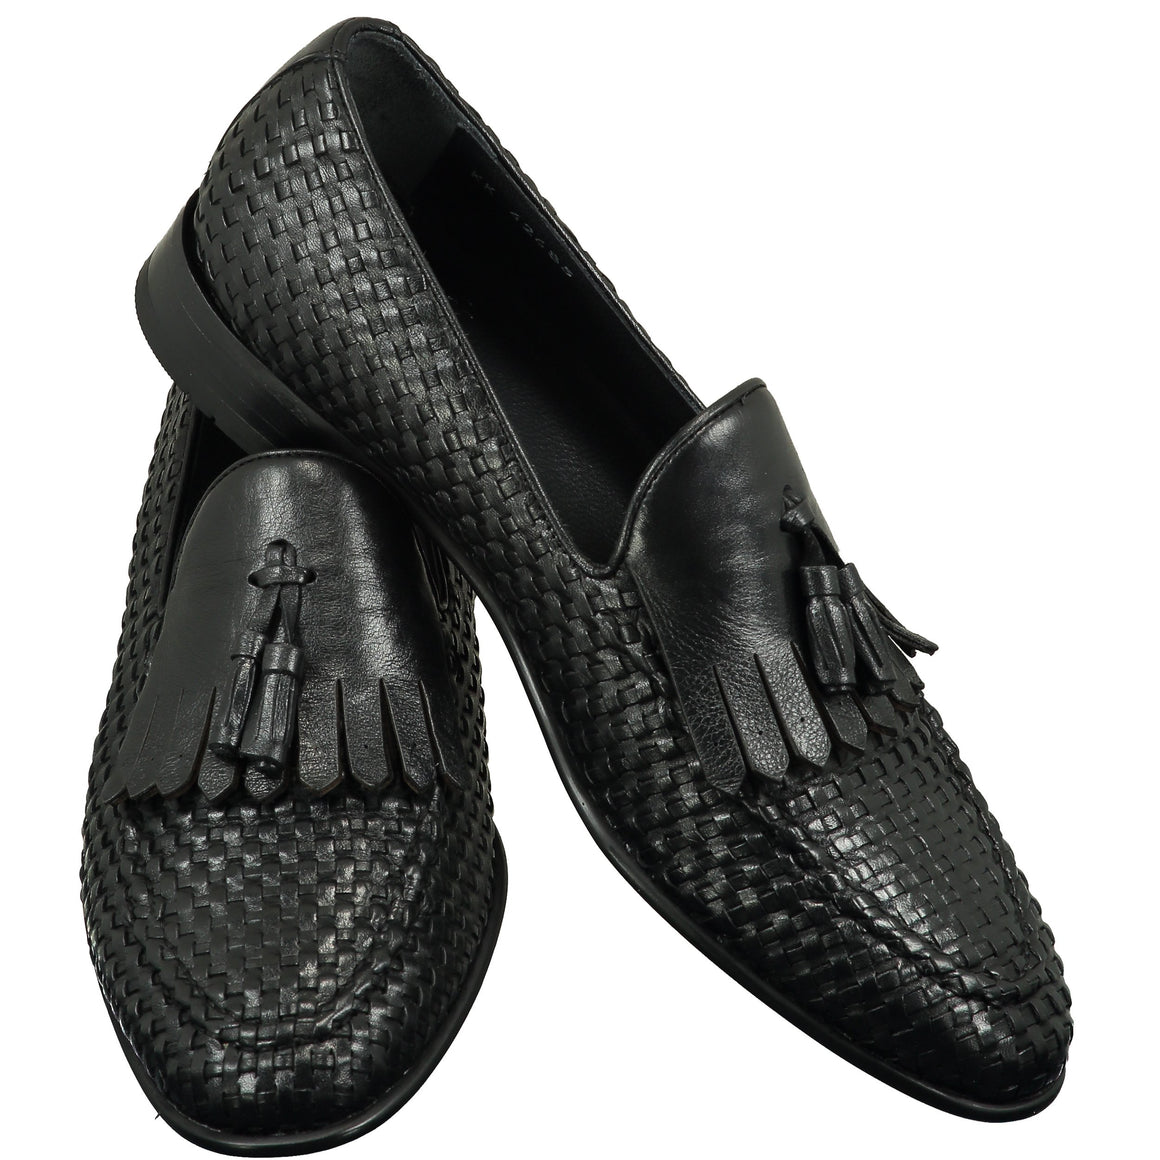 Top perspective for black shiny shoes with lace